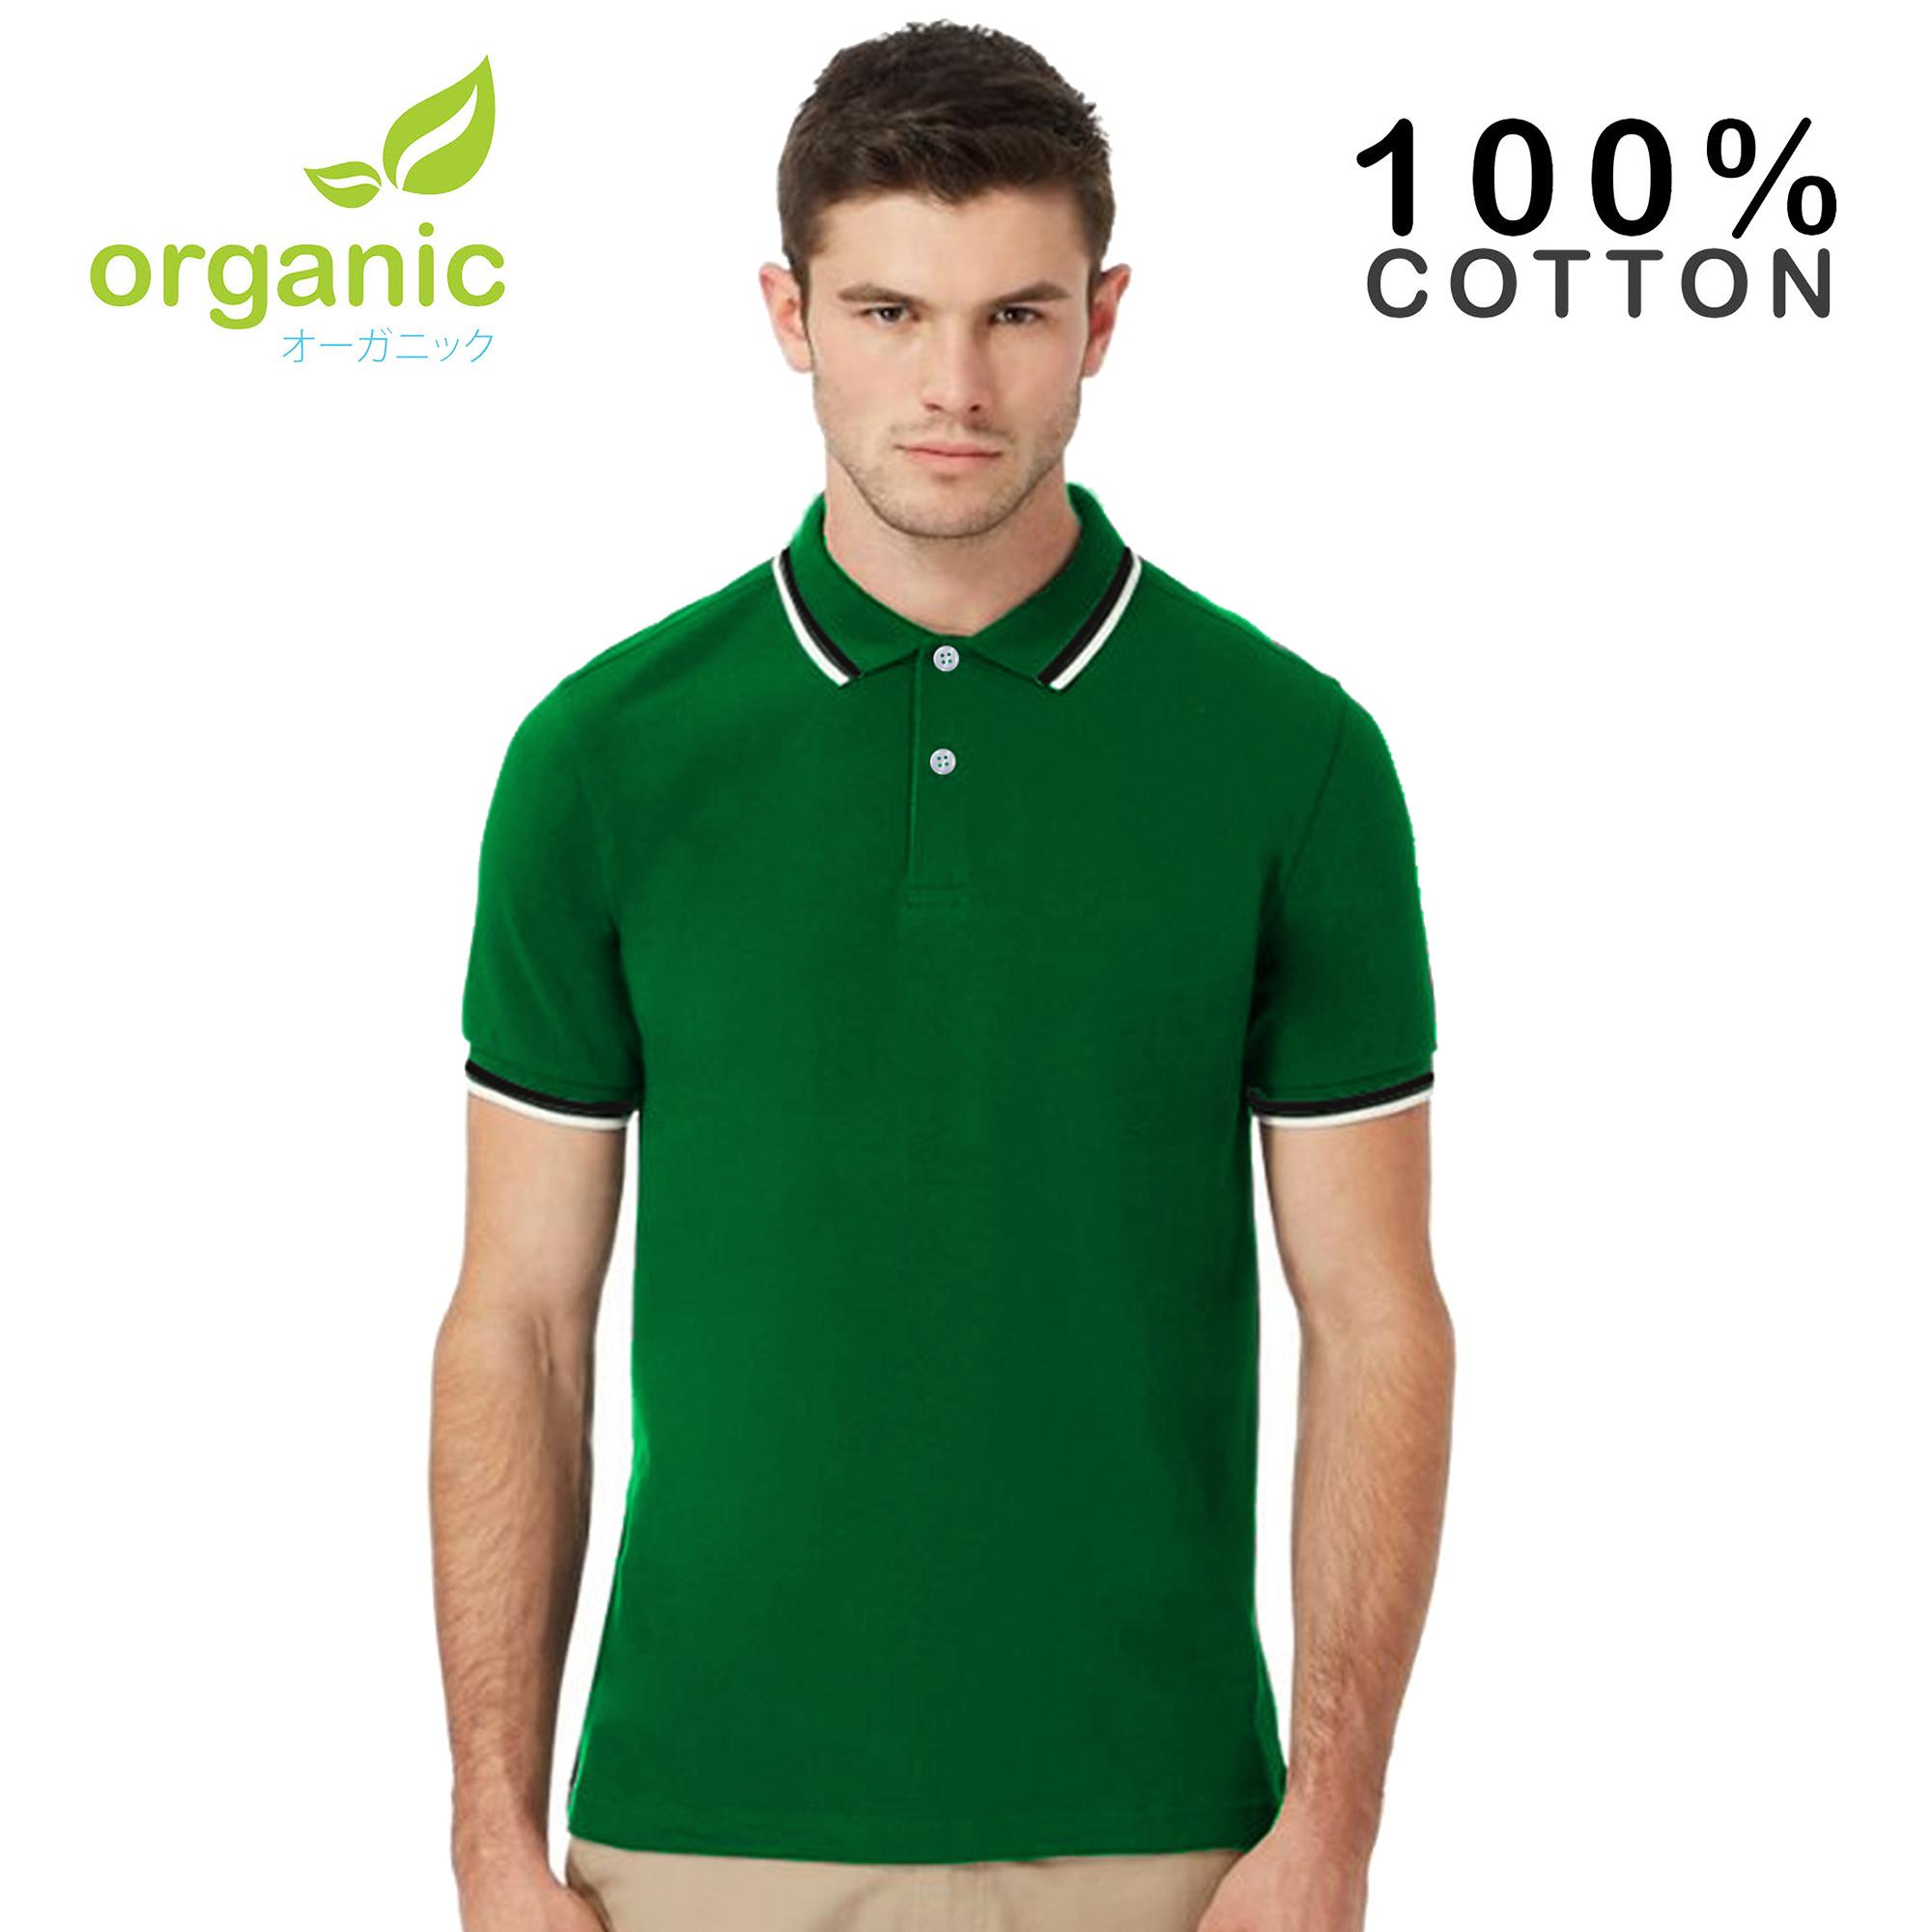 d0088e6e Organic Mens Tipped Pique Polo Shirt Tees t shirt tshirt shirts tshirts tee  tops top for